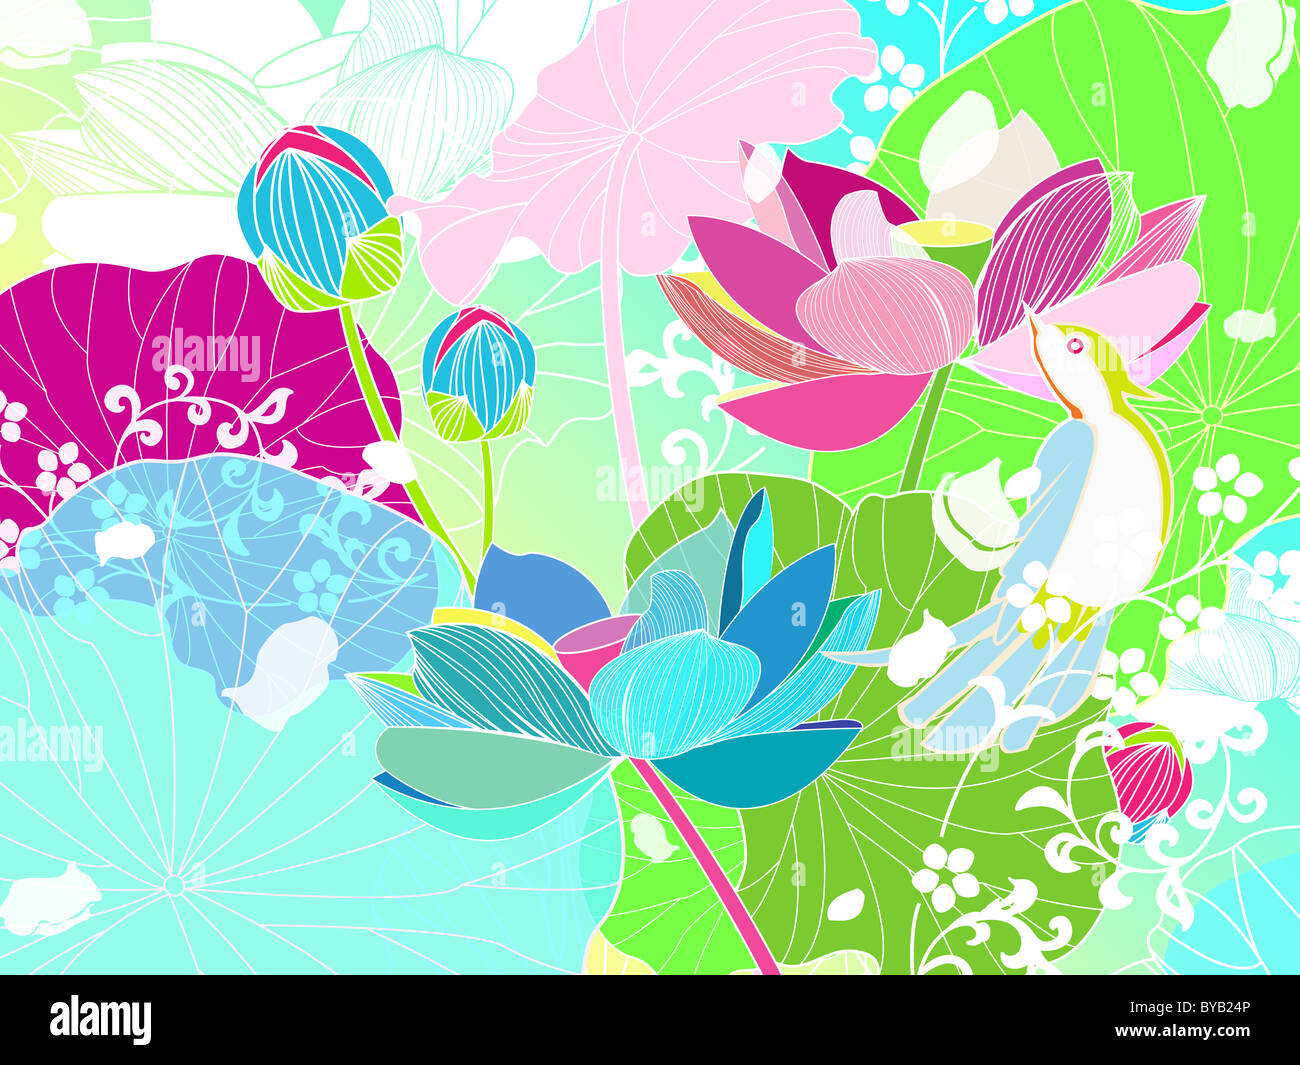 Themes Illustration Background Stock Photos Themes Illustration